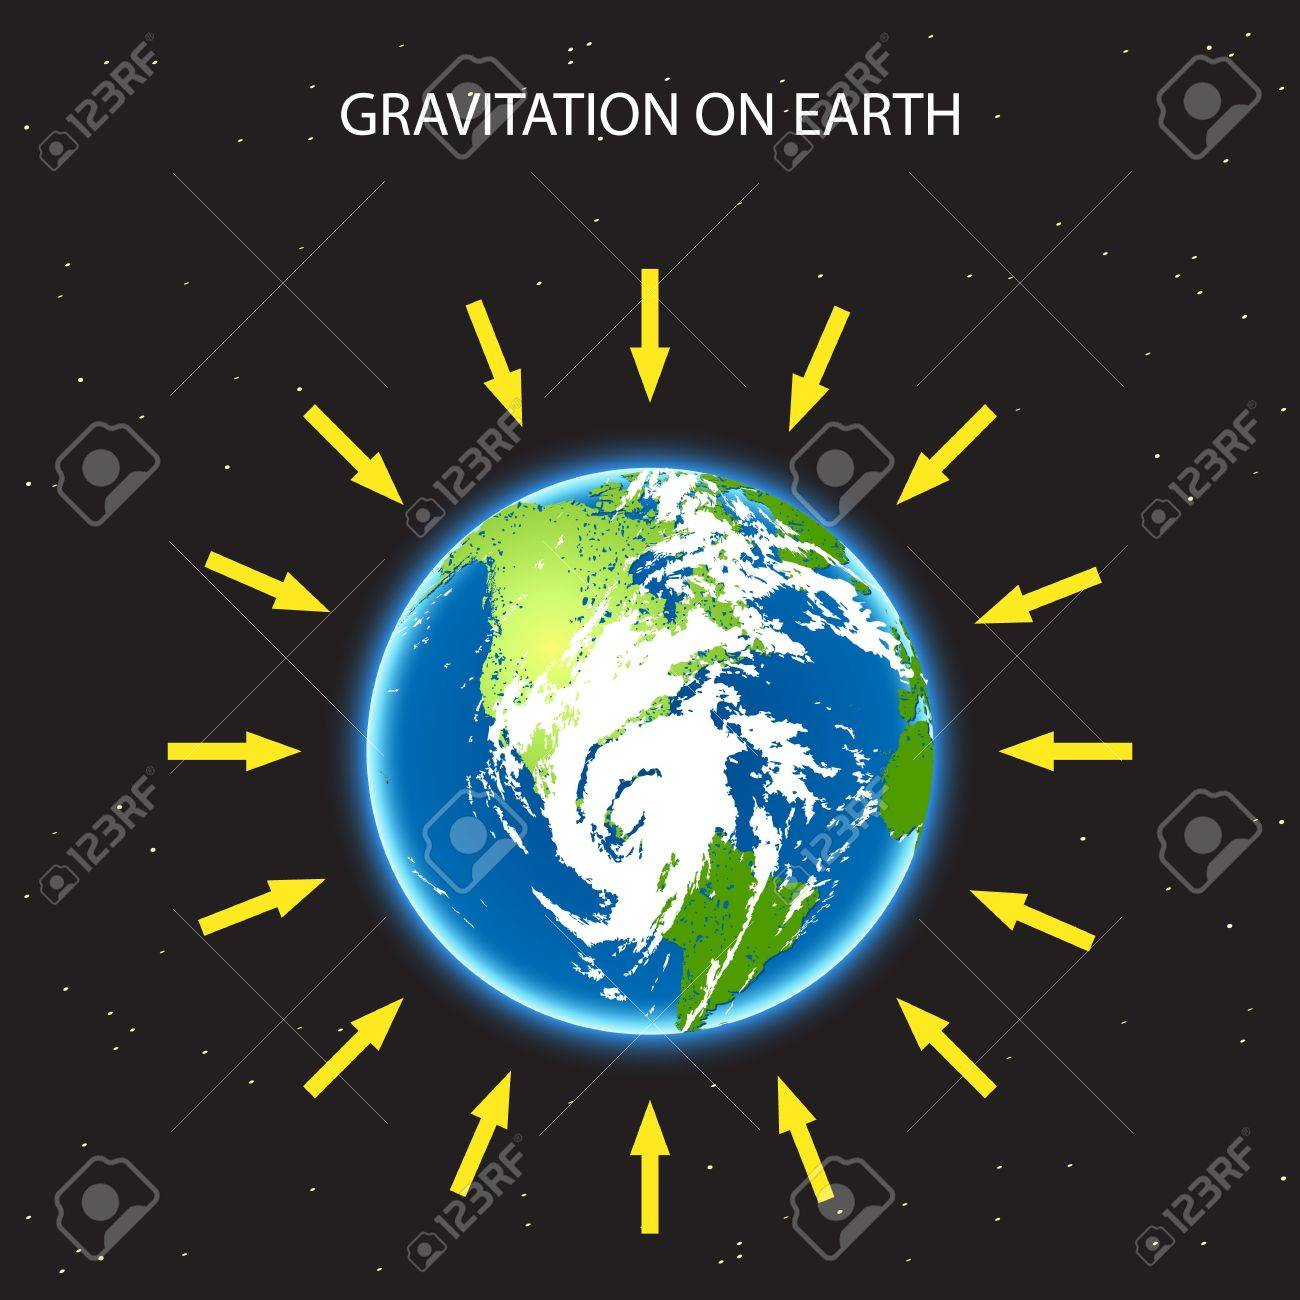 Gravitation on planet Earth concept illustration with planet and arrows that shows how force of gravity acts on Earth realistic vector of Earth Earth in space, Earth on black, Earth from distance - 63478507